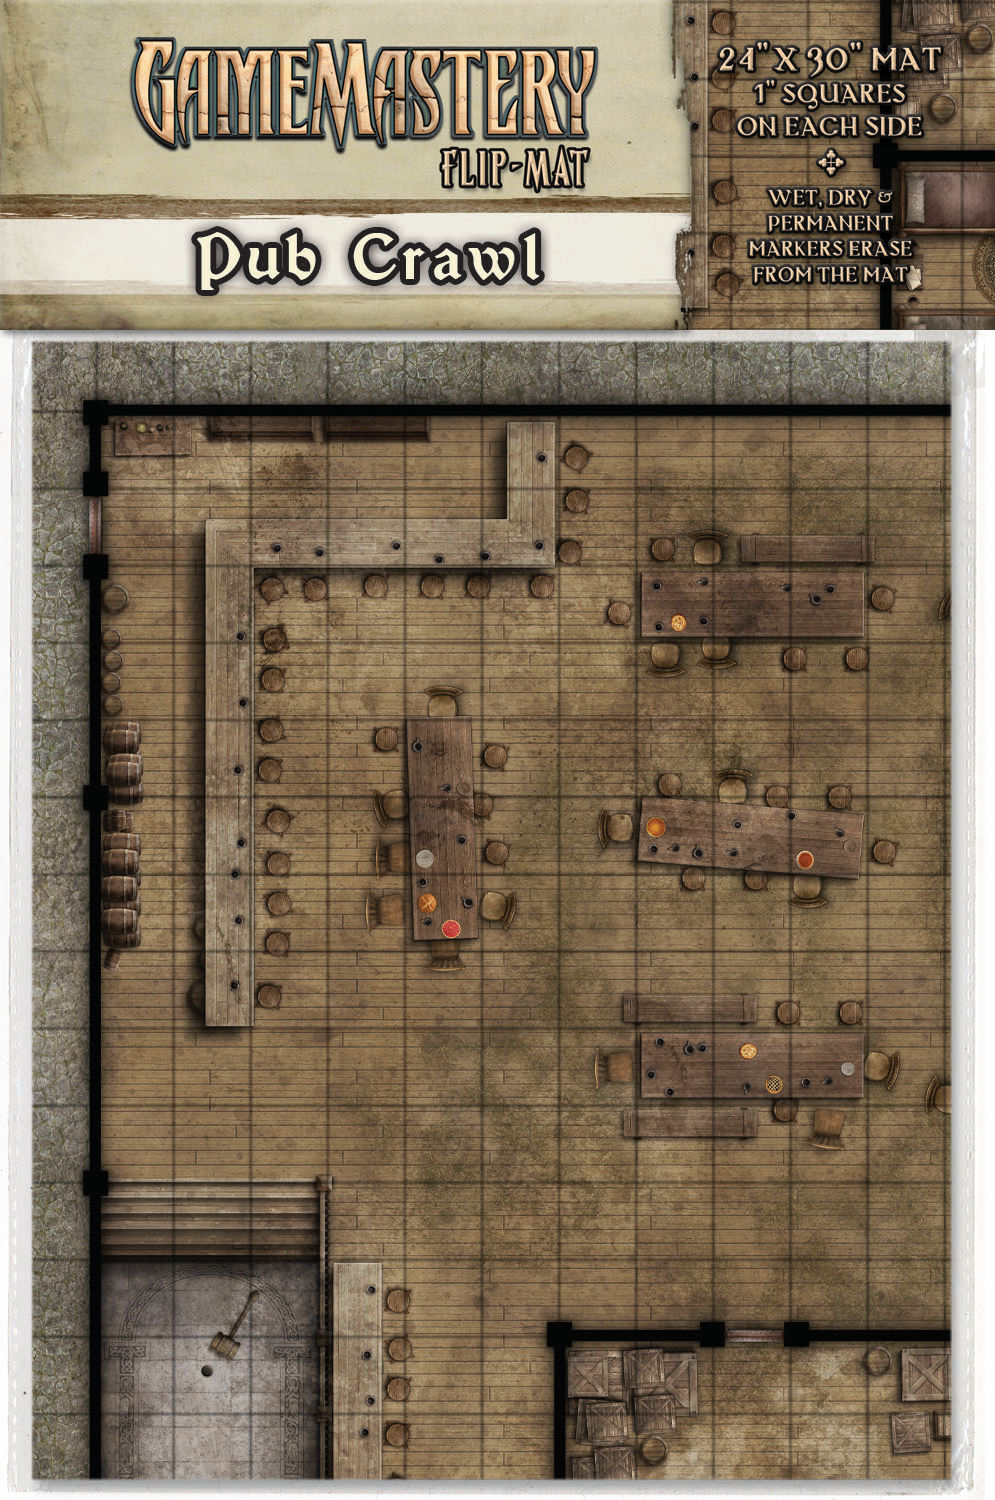 GAMEMASTERY FLIP MAT PUB CRAWL